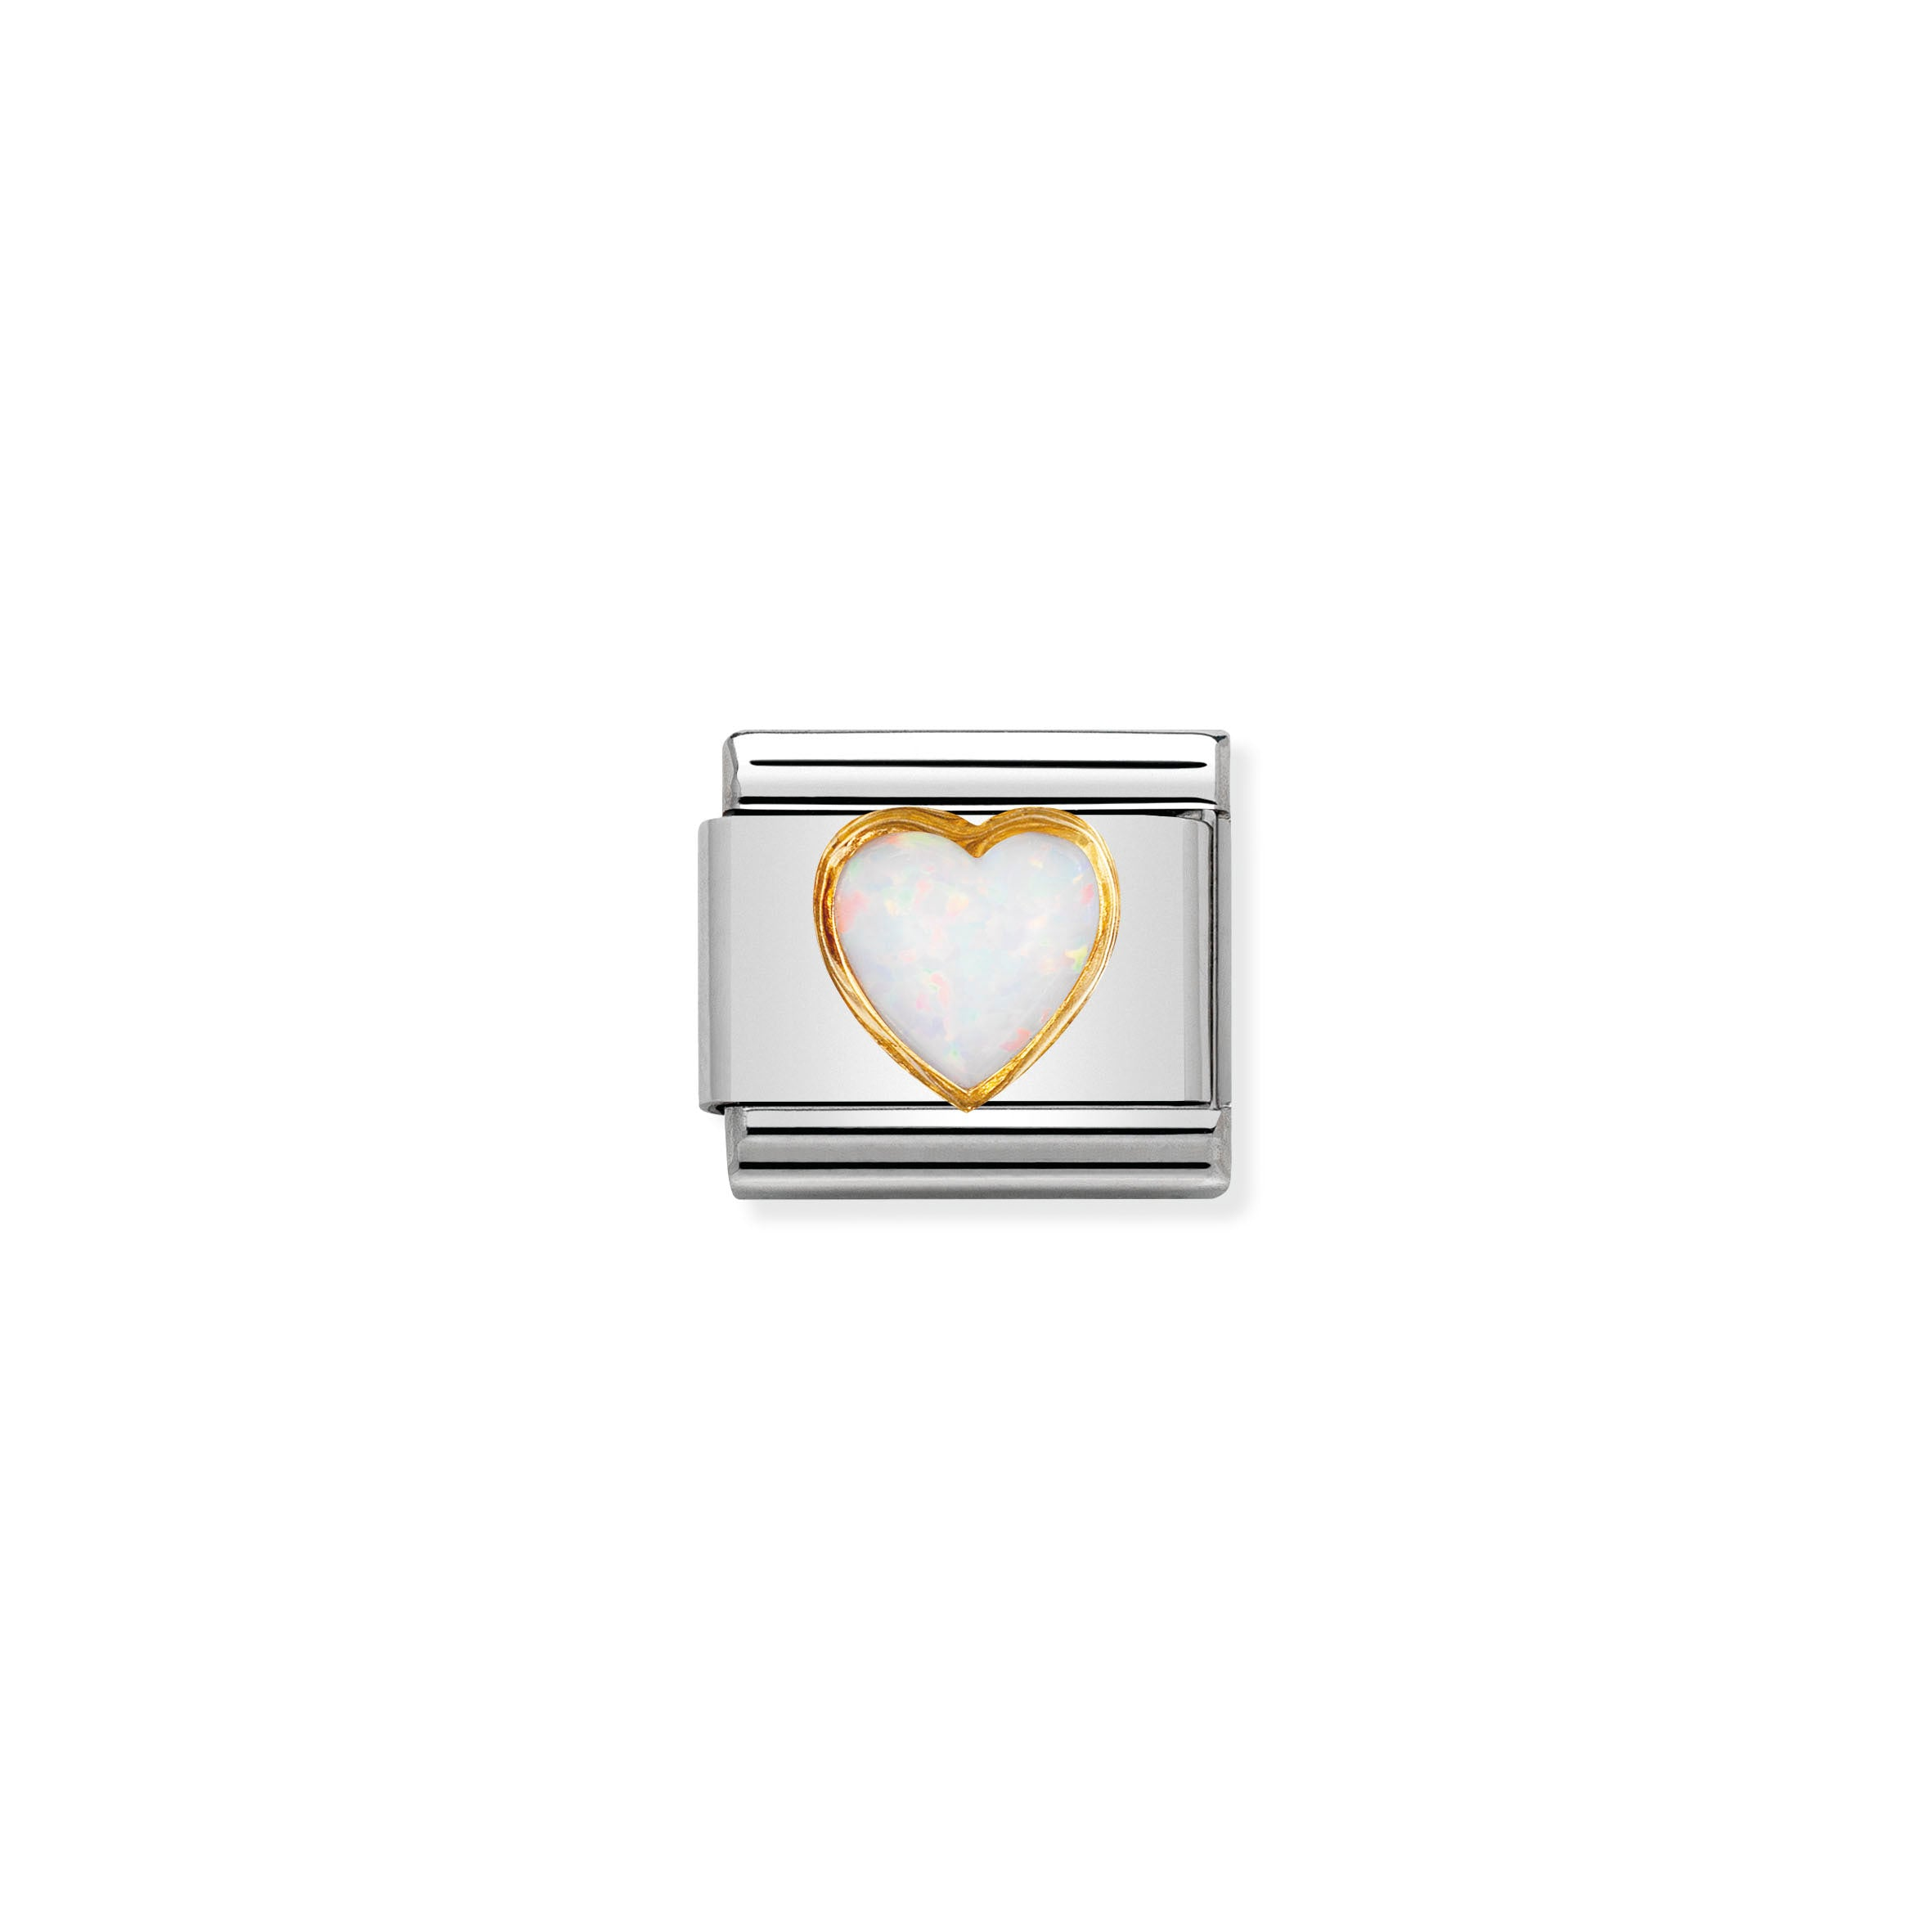 NOMINATION - Composable 030501 07 Classic STONES HEARTS st/steel, 18ct gold (White Opal)